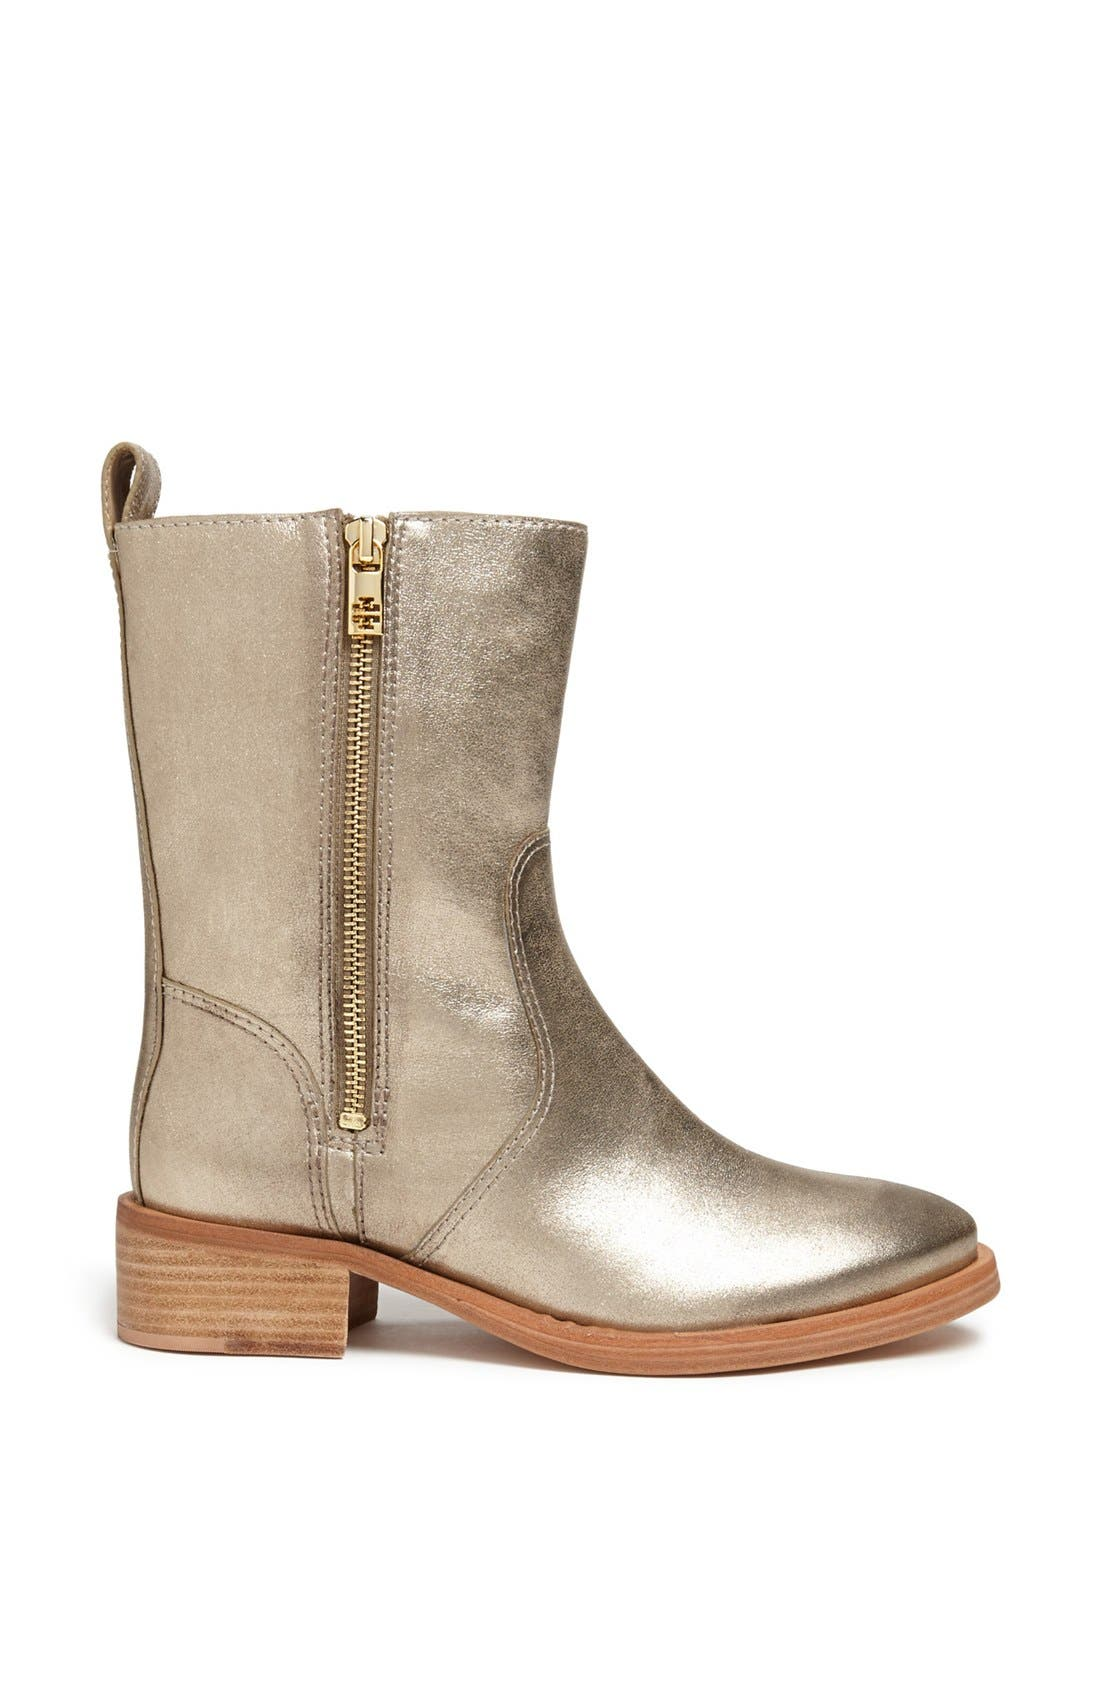 Main Image - Tory Burch 'Halle' Bootie